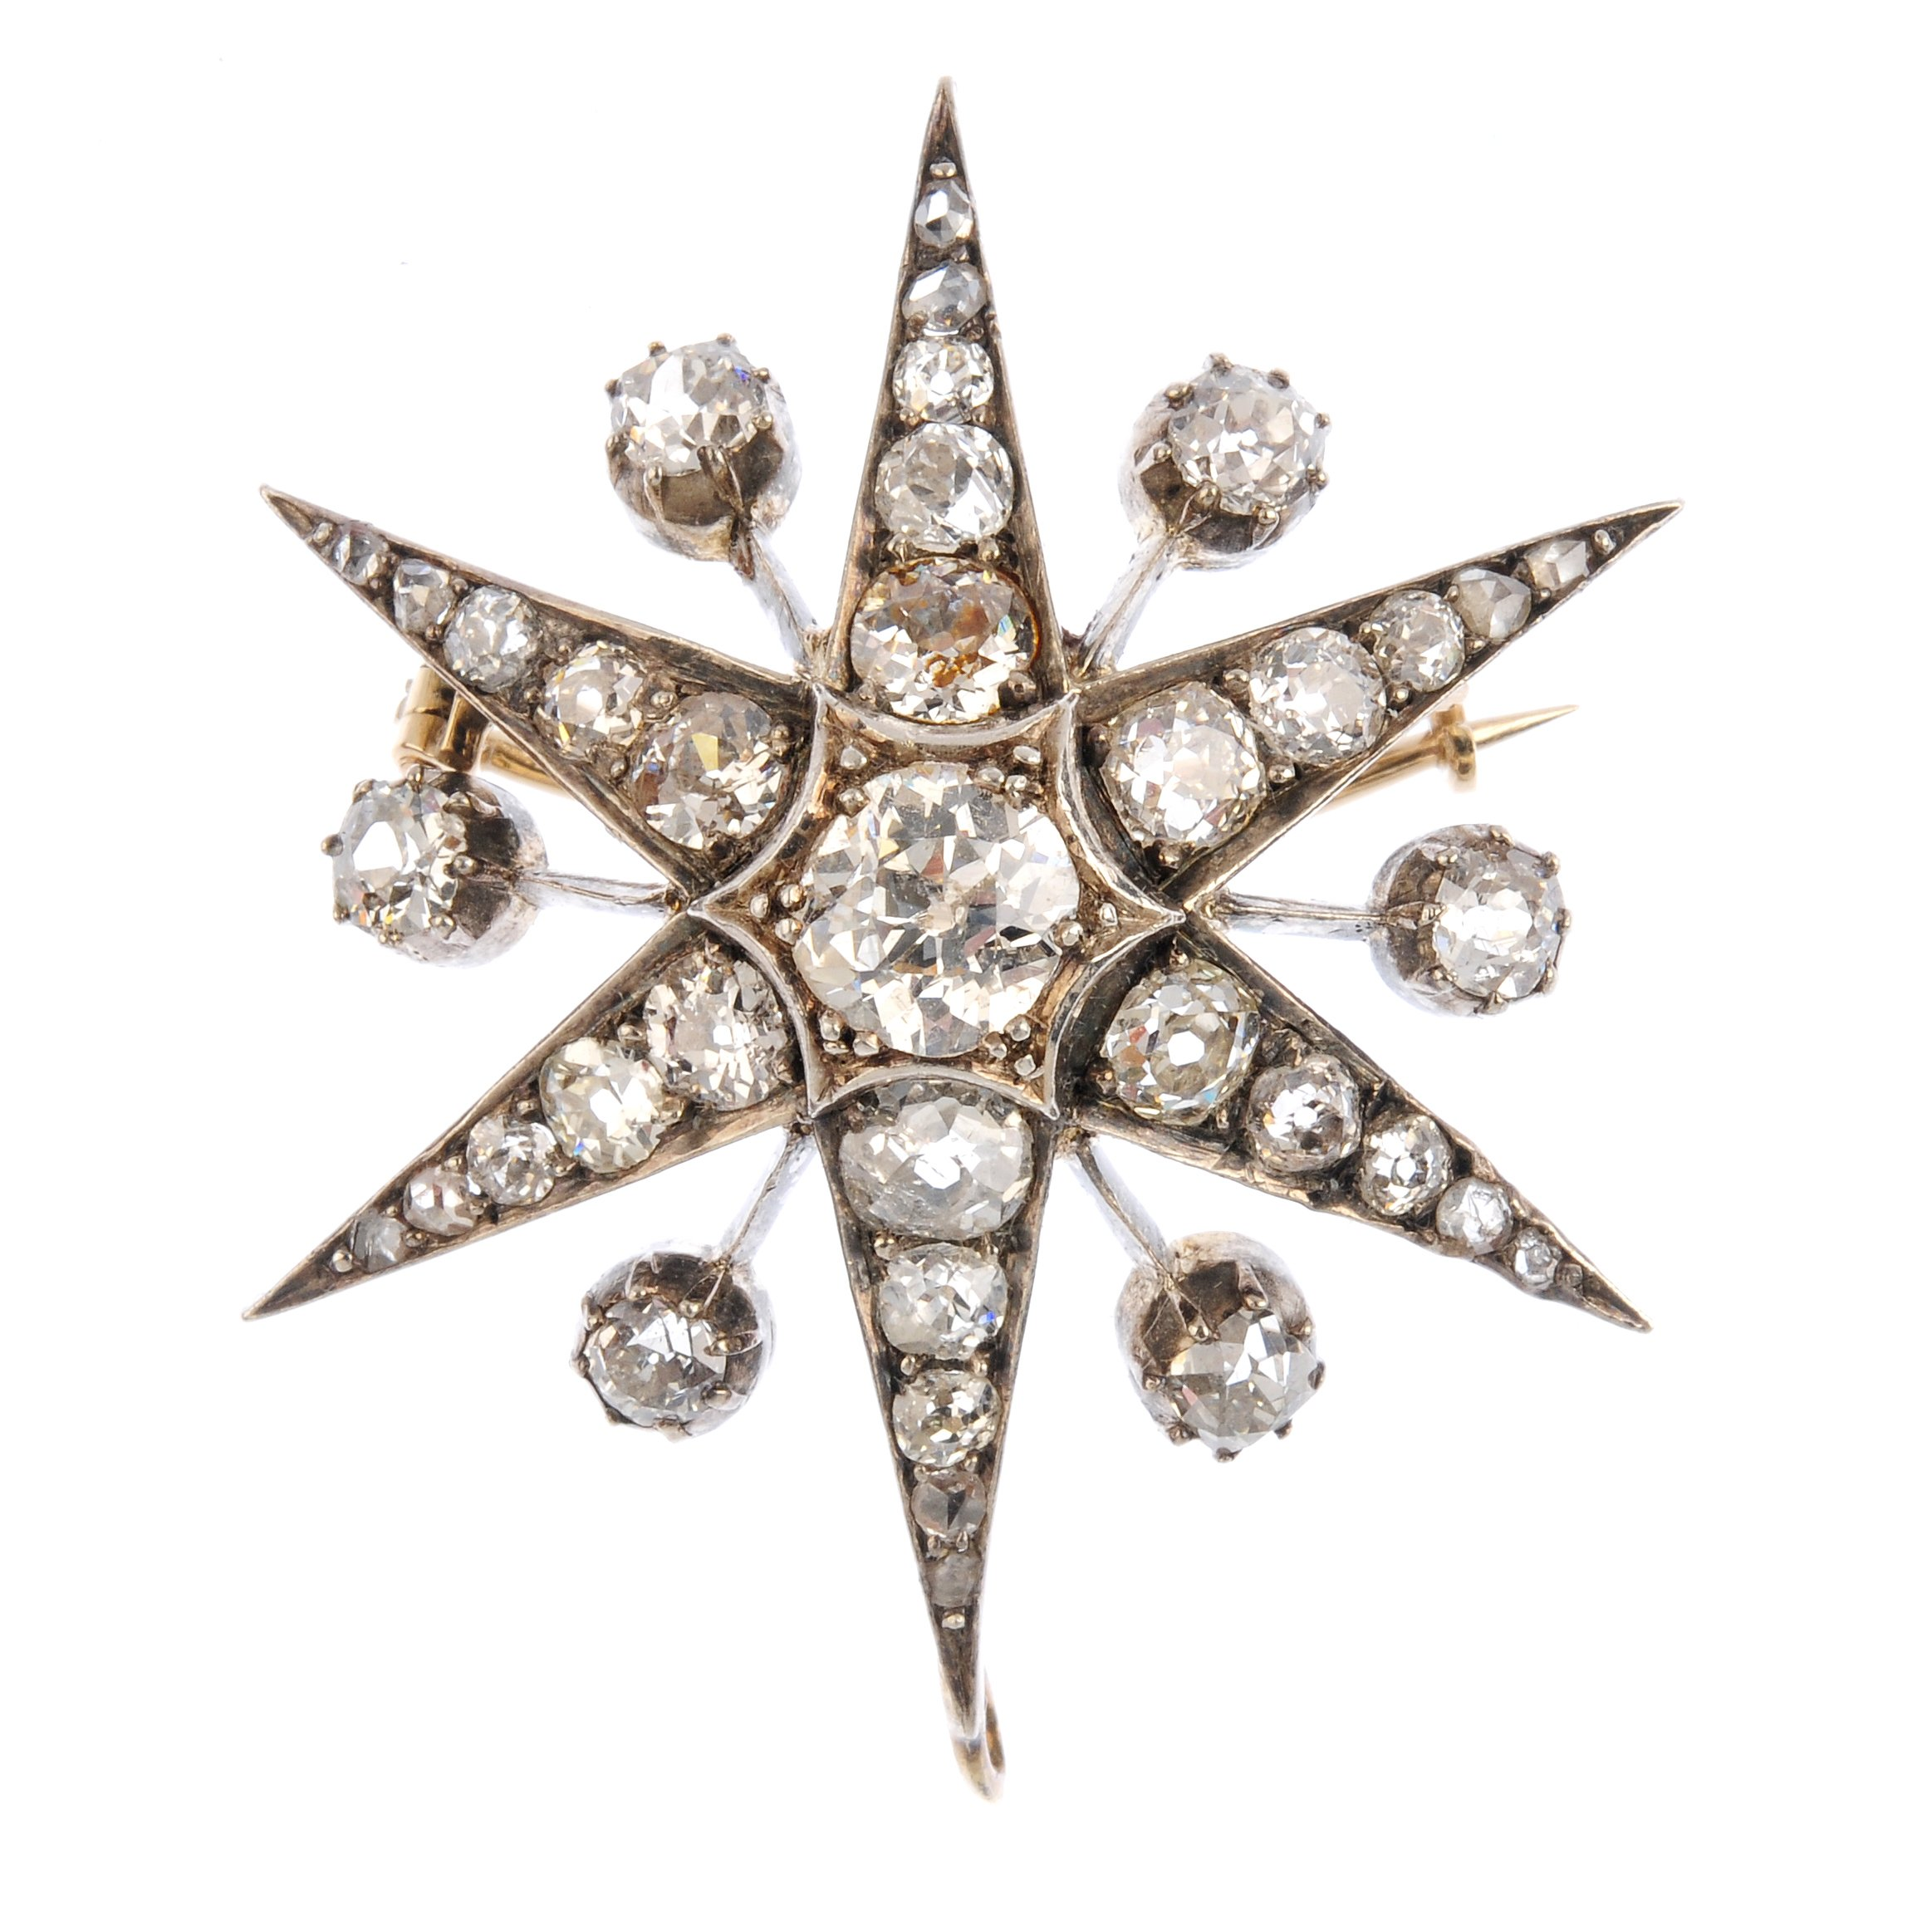 """<a href=""""https://www.fellows.co.uk/2104-lot-407-A-late-Victorian-diamond-star-brooch?utm_source=Ageless%20Heirlooms&utm_medium=blog&utm_campaign=Ageless%20Heirlooms%20Vintage&utm_content=Blog%20and%20social"""">LOT 407</a>"""